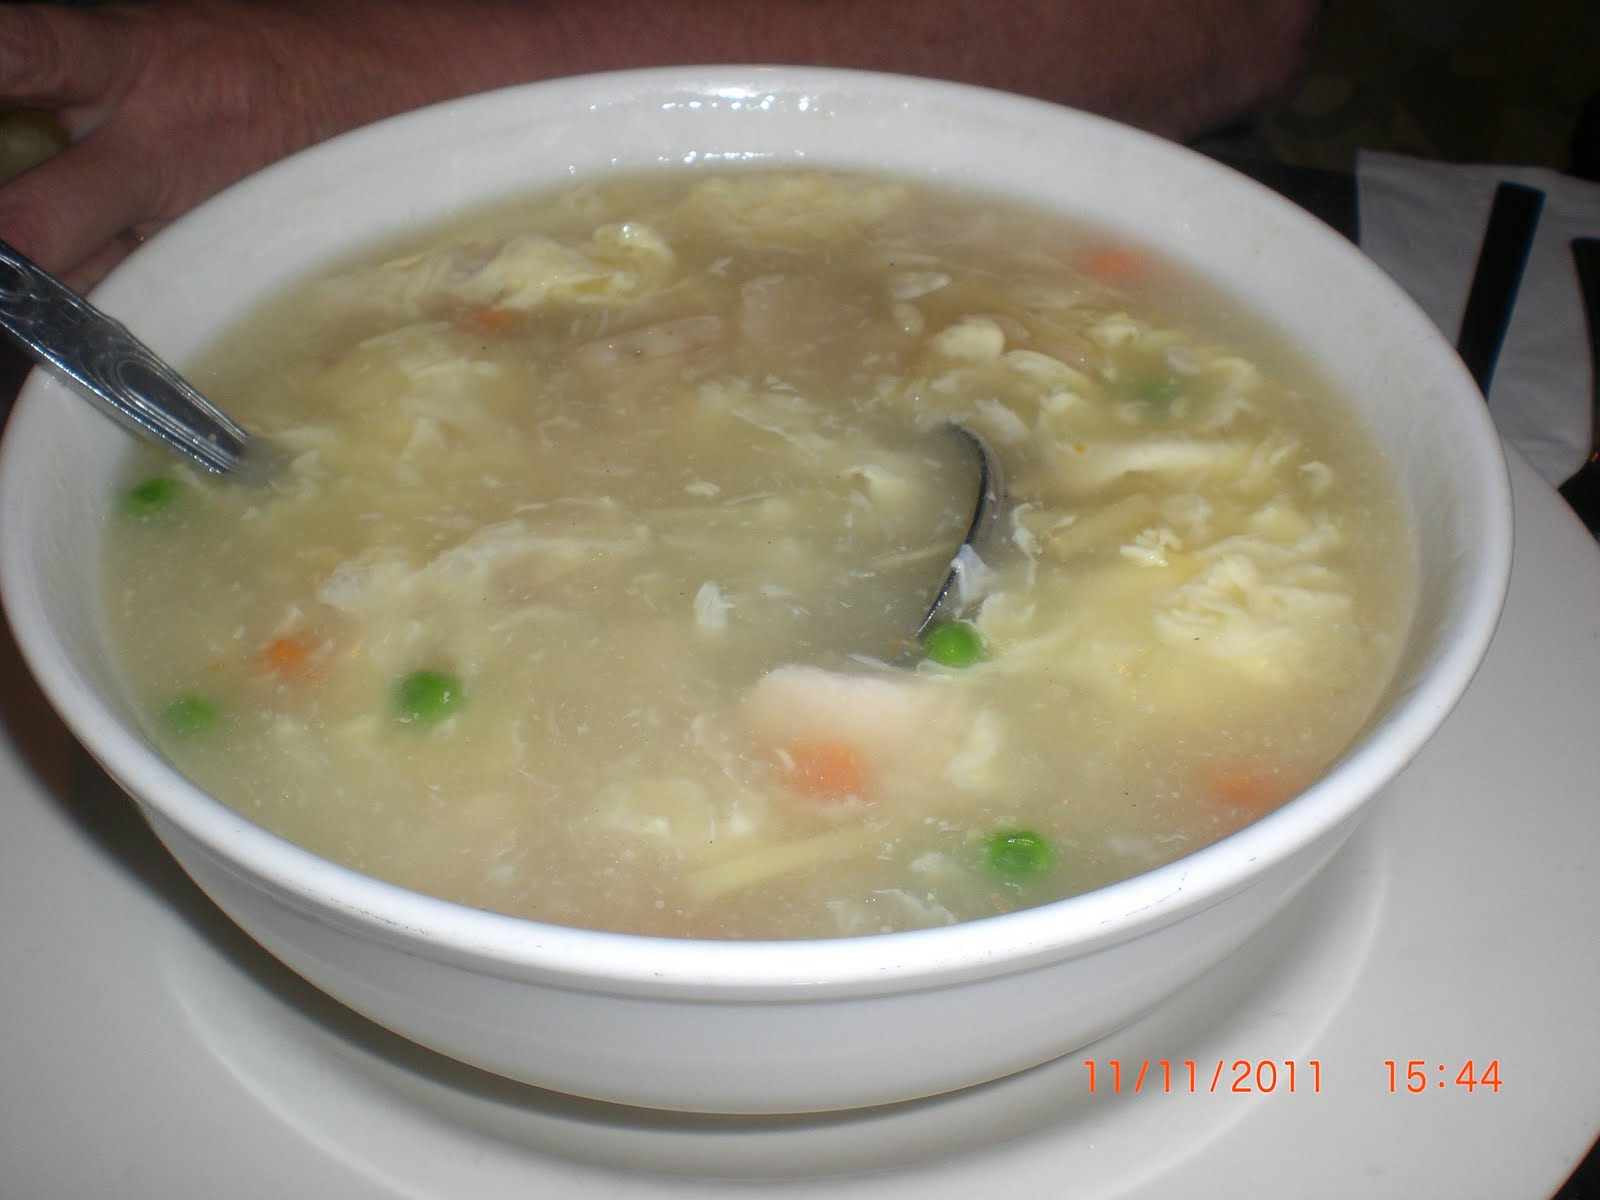 Chinese Egg Drop Soup The eggdrop soup has a broth